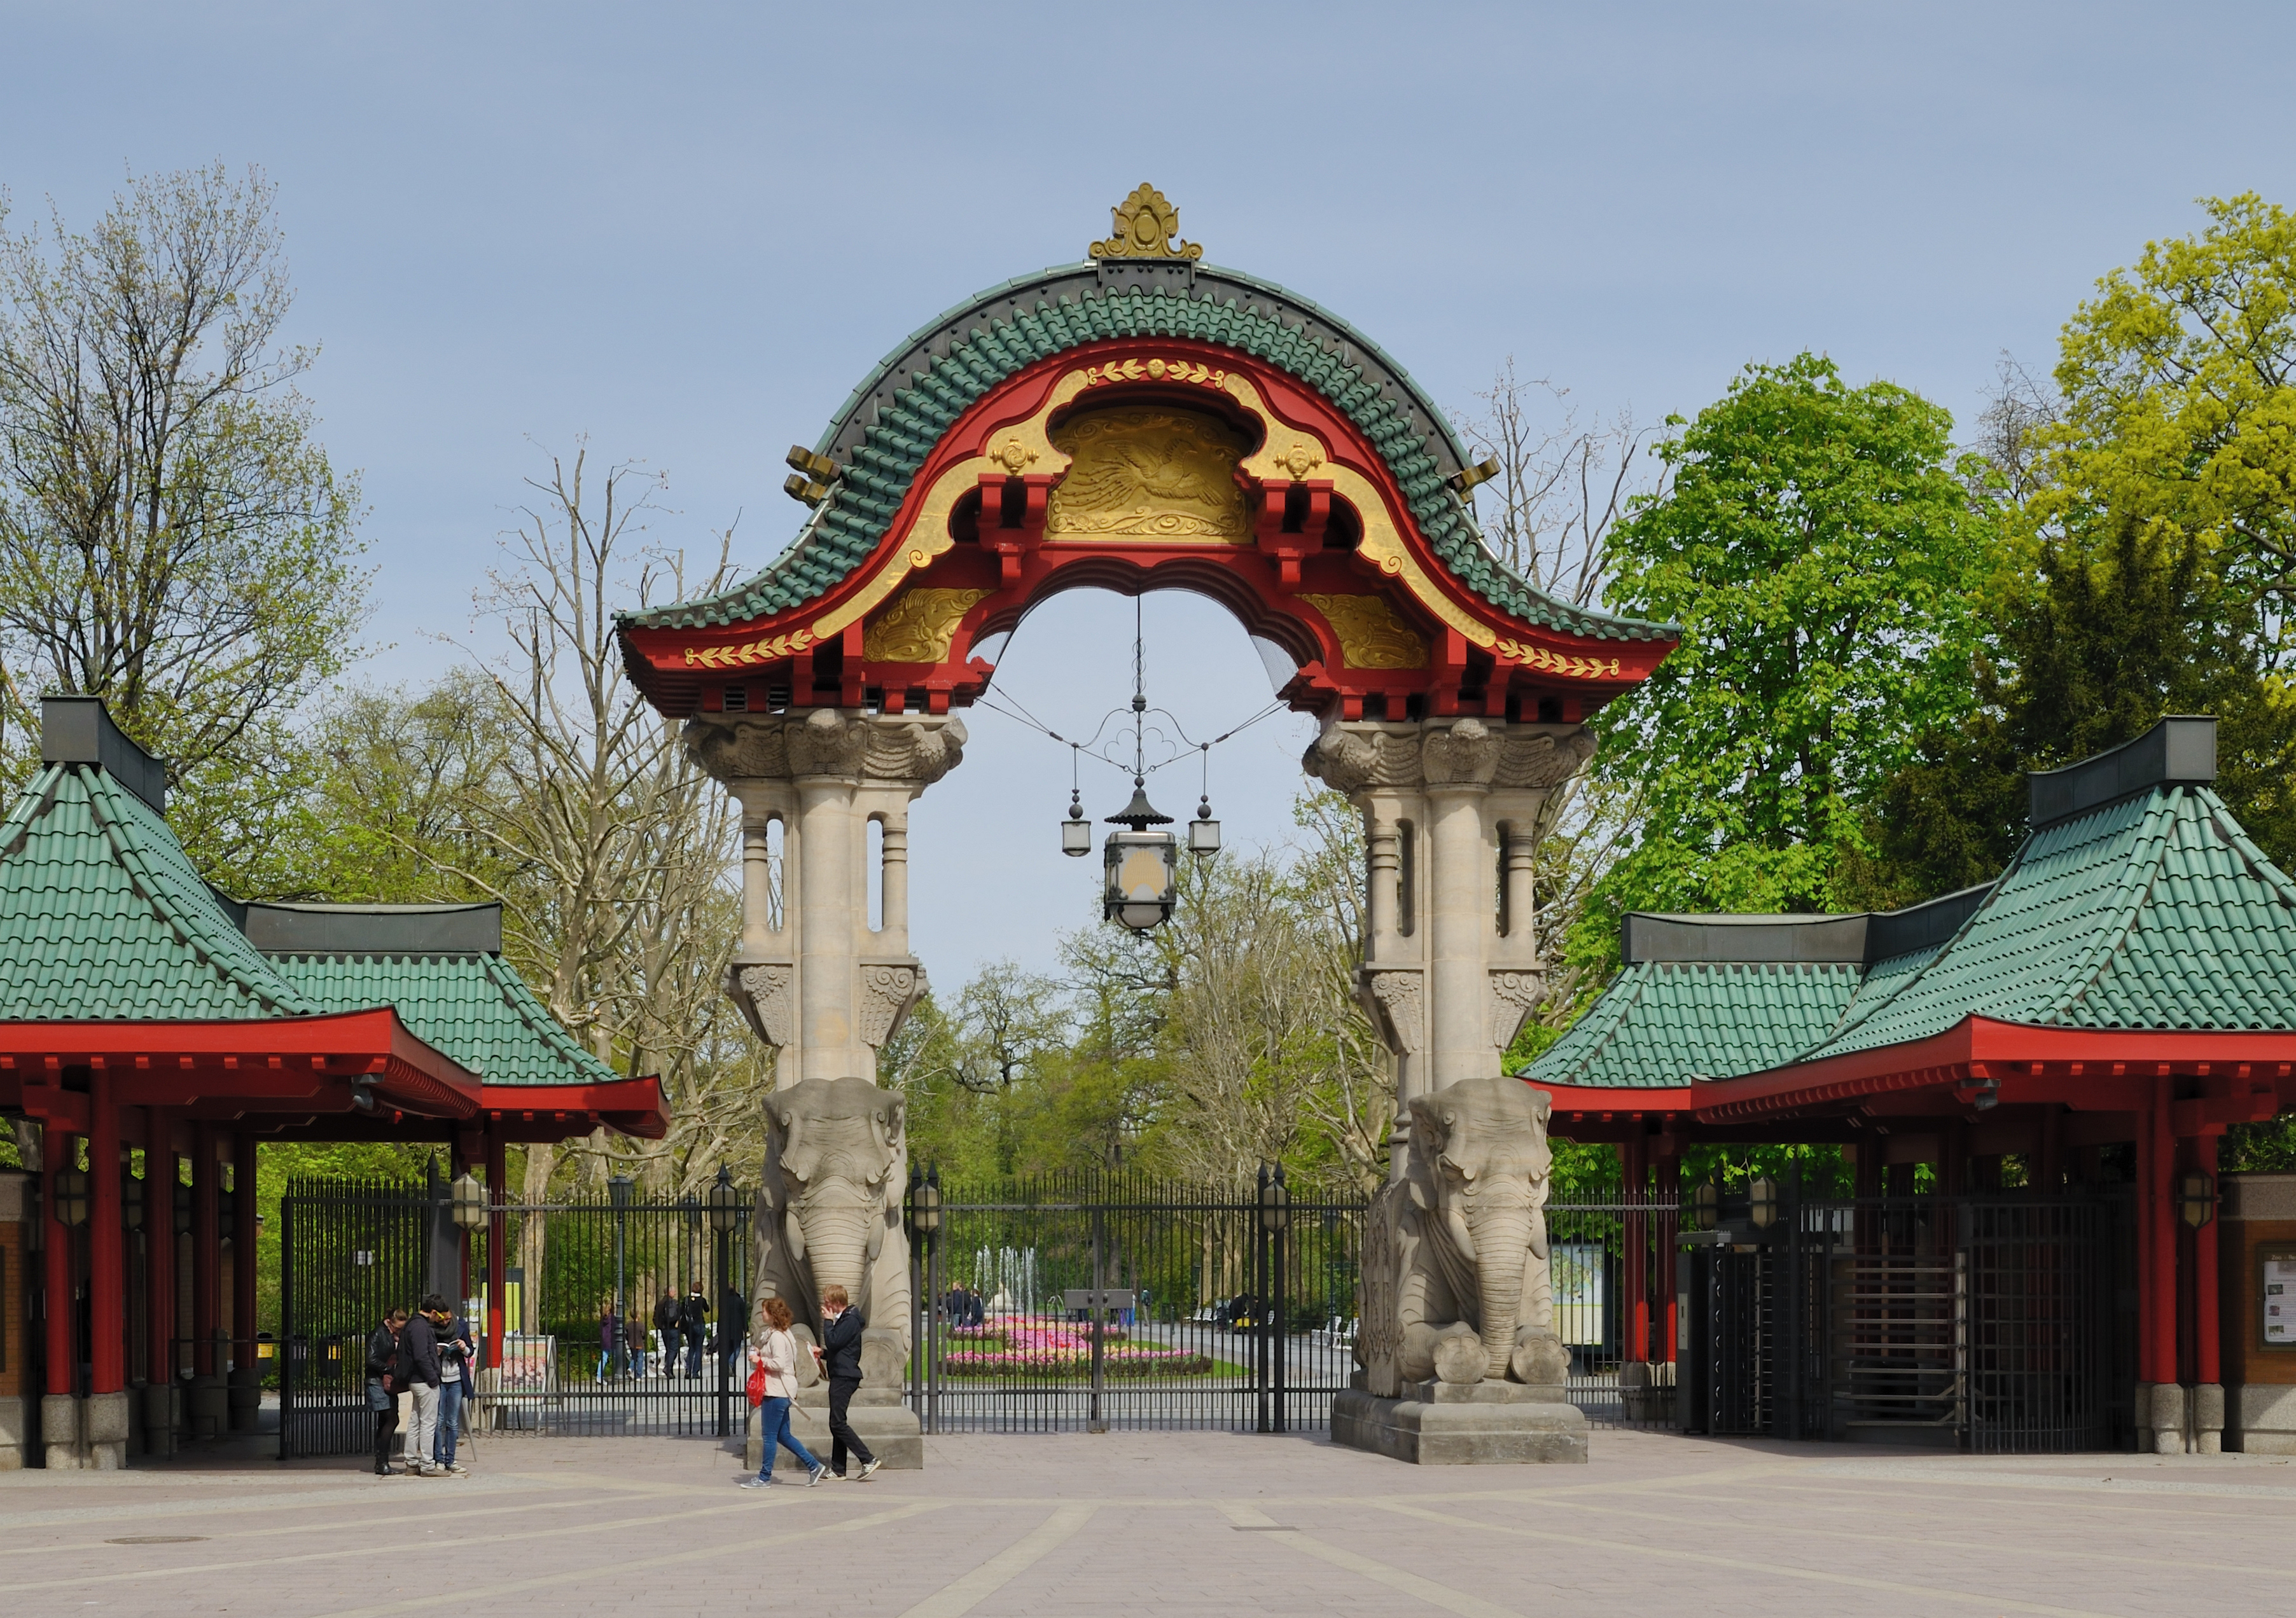 File:Berlin - Berliner Zoo - Elefantentor1.jpg - Wikimedia Commons